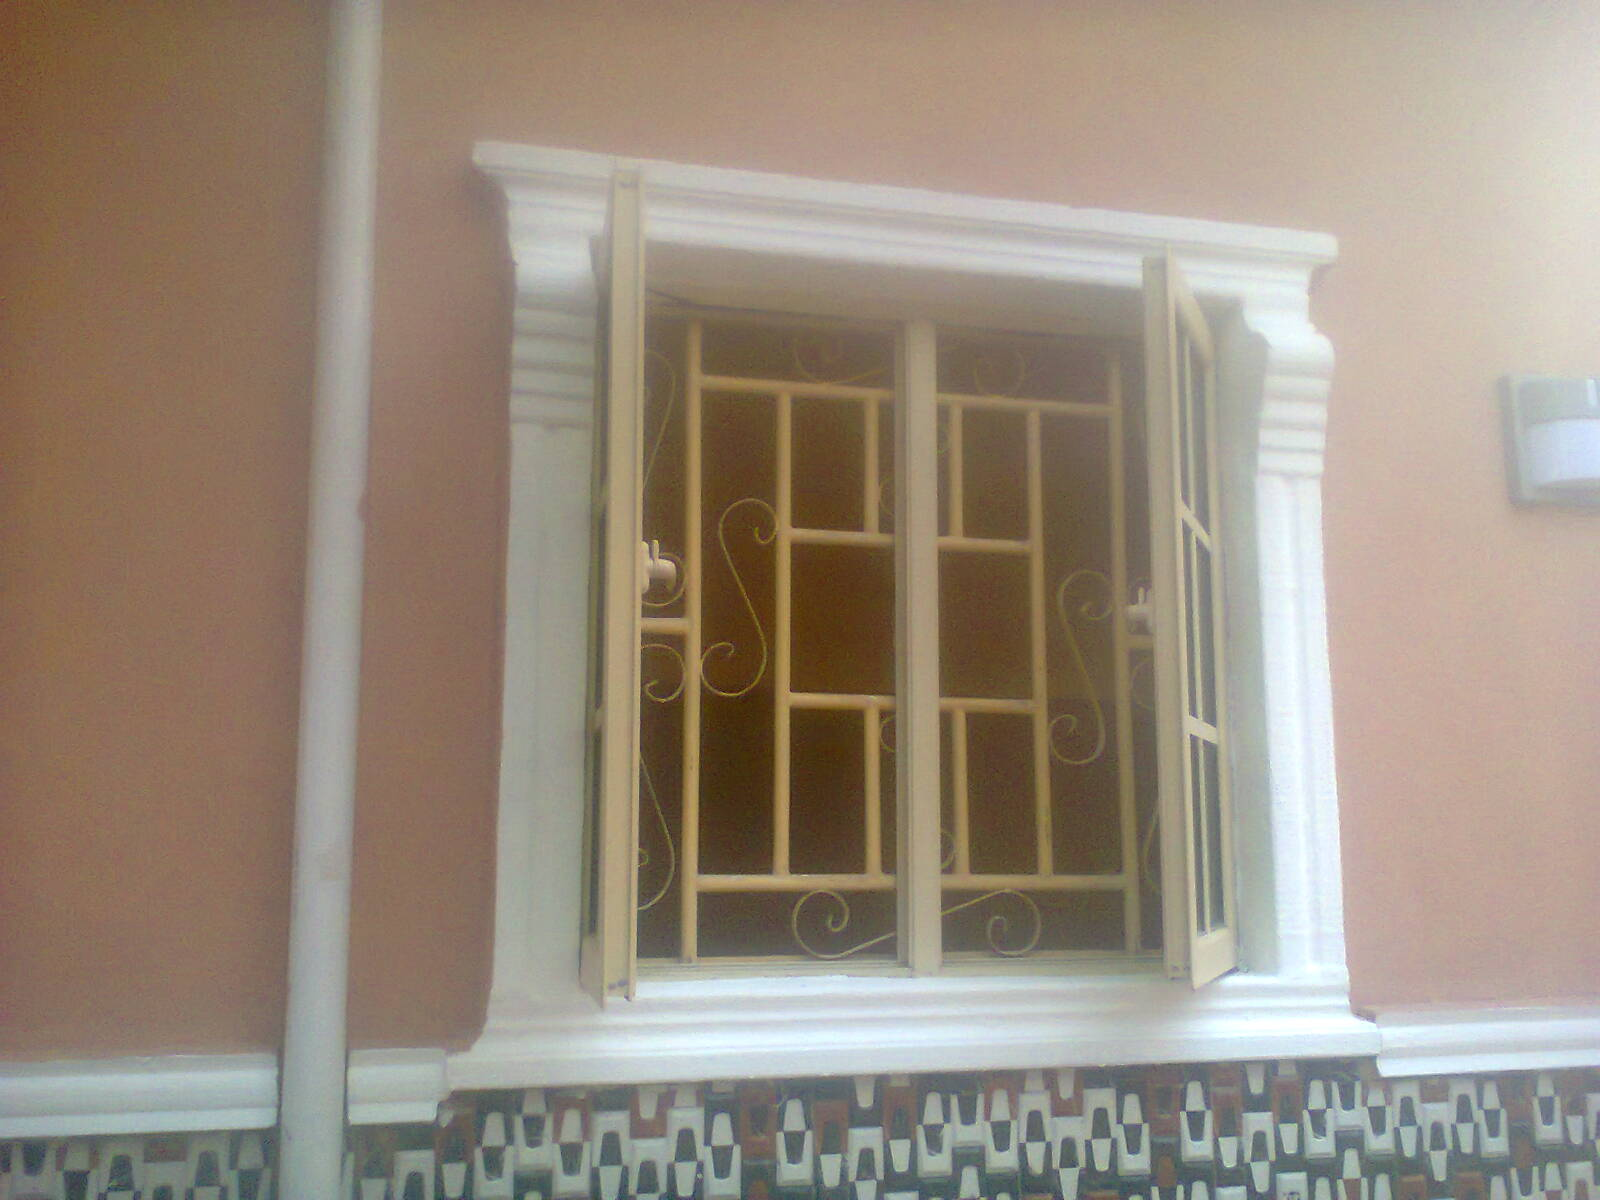 As a painter with years of experience i suggest u use sand and offwhite or calabash and offwhite or grey and white or better still choose from the